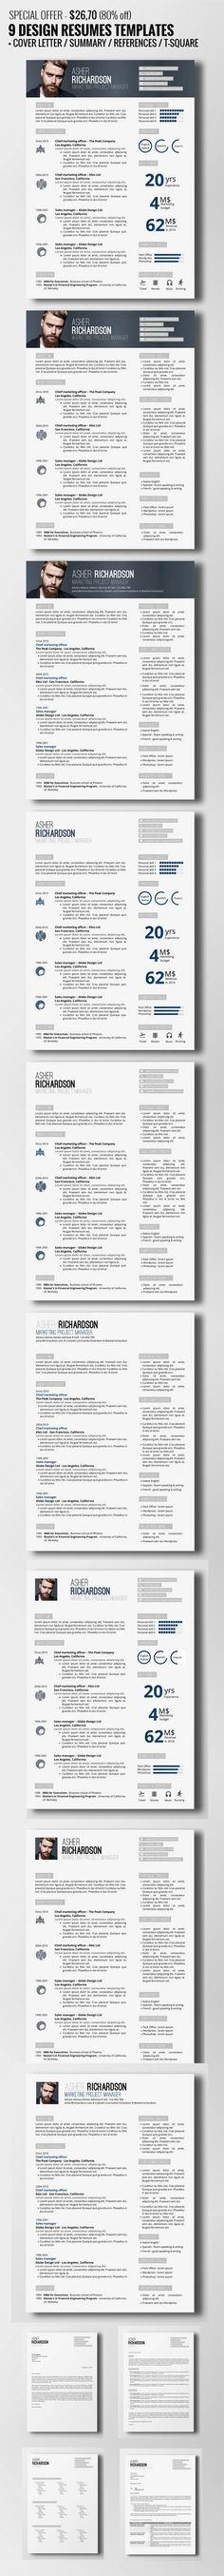 435 best Resume images on Pinterest Resume design, Design resume - modern day resume